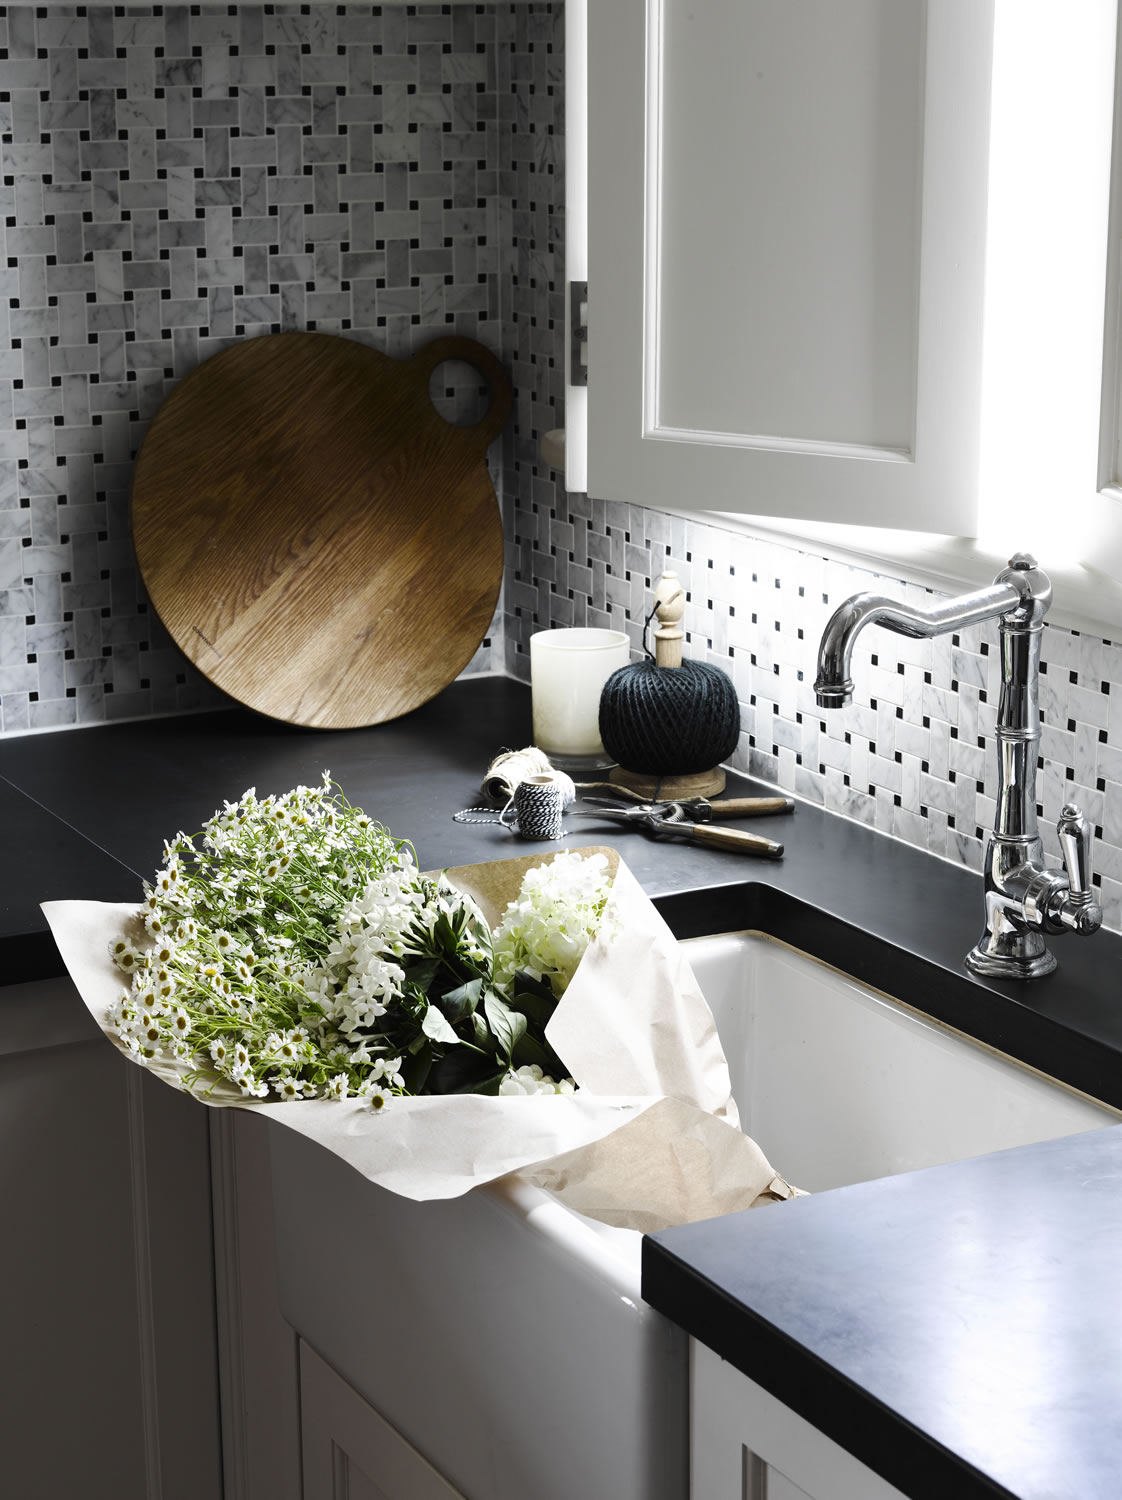 Kitchen_details_2_012.jpg